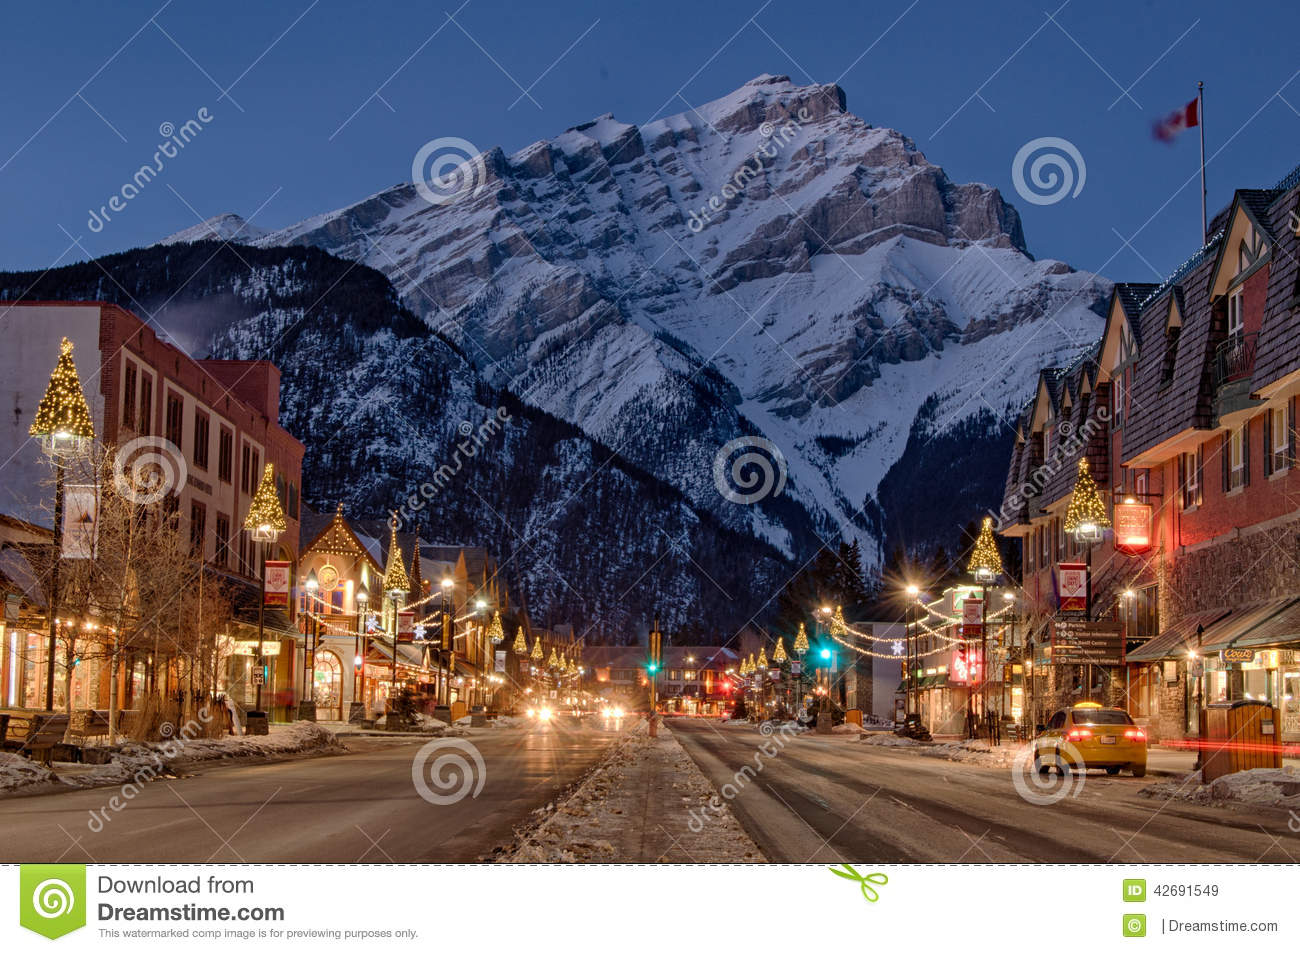 Fall In Vermont Wallpaper Banff Mountain Town Winter Christmas Editorial Stock Image